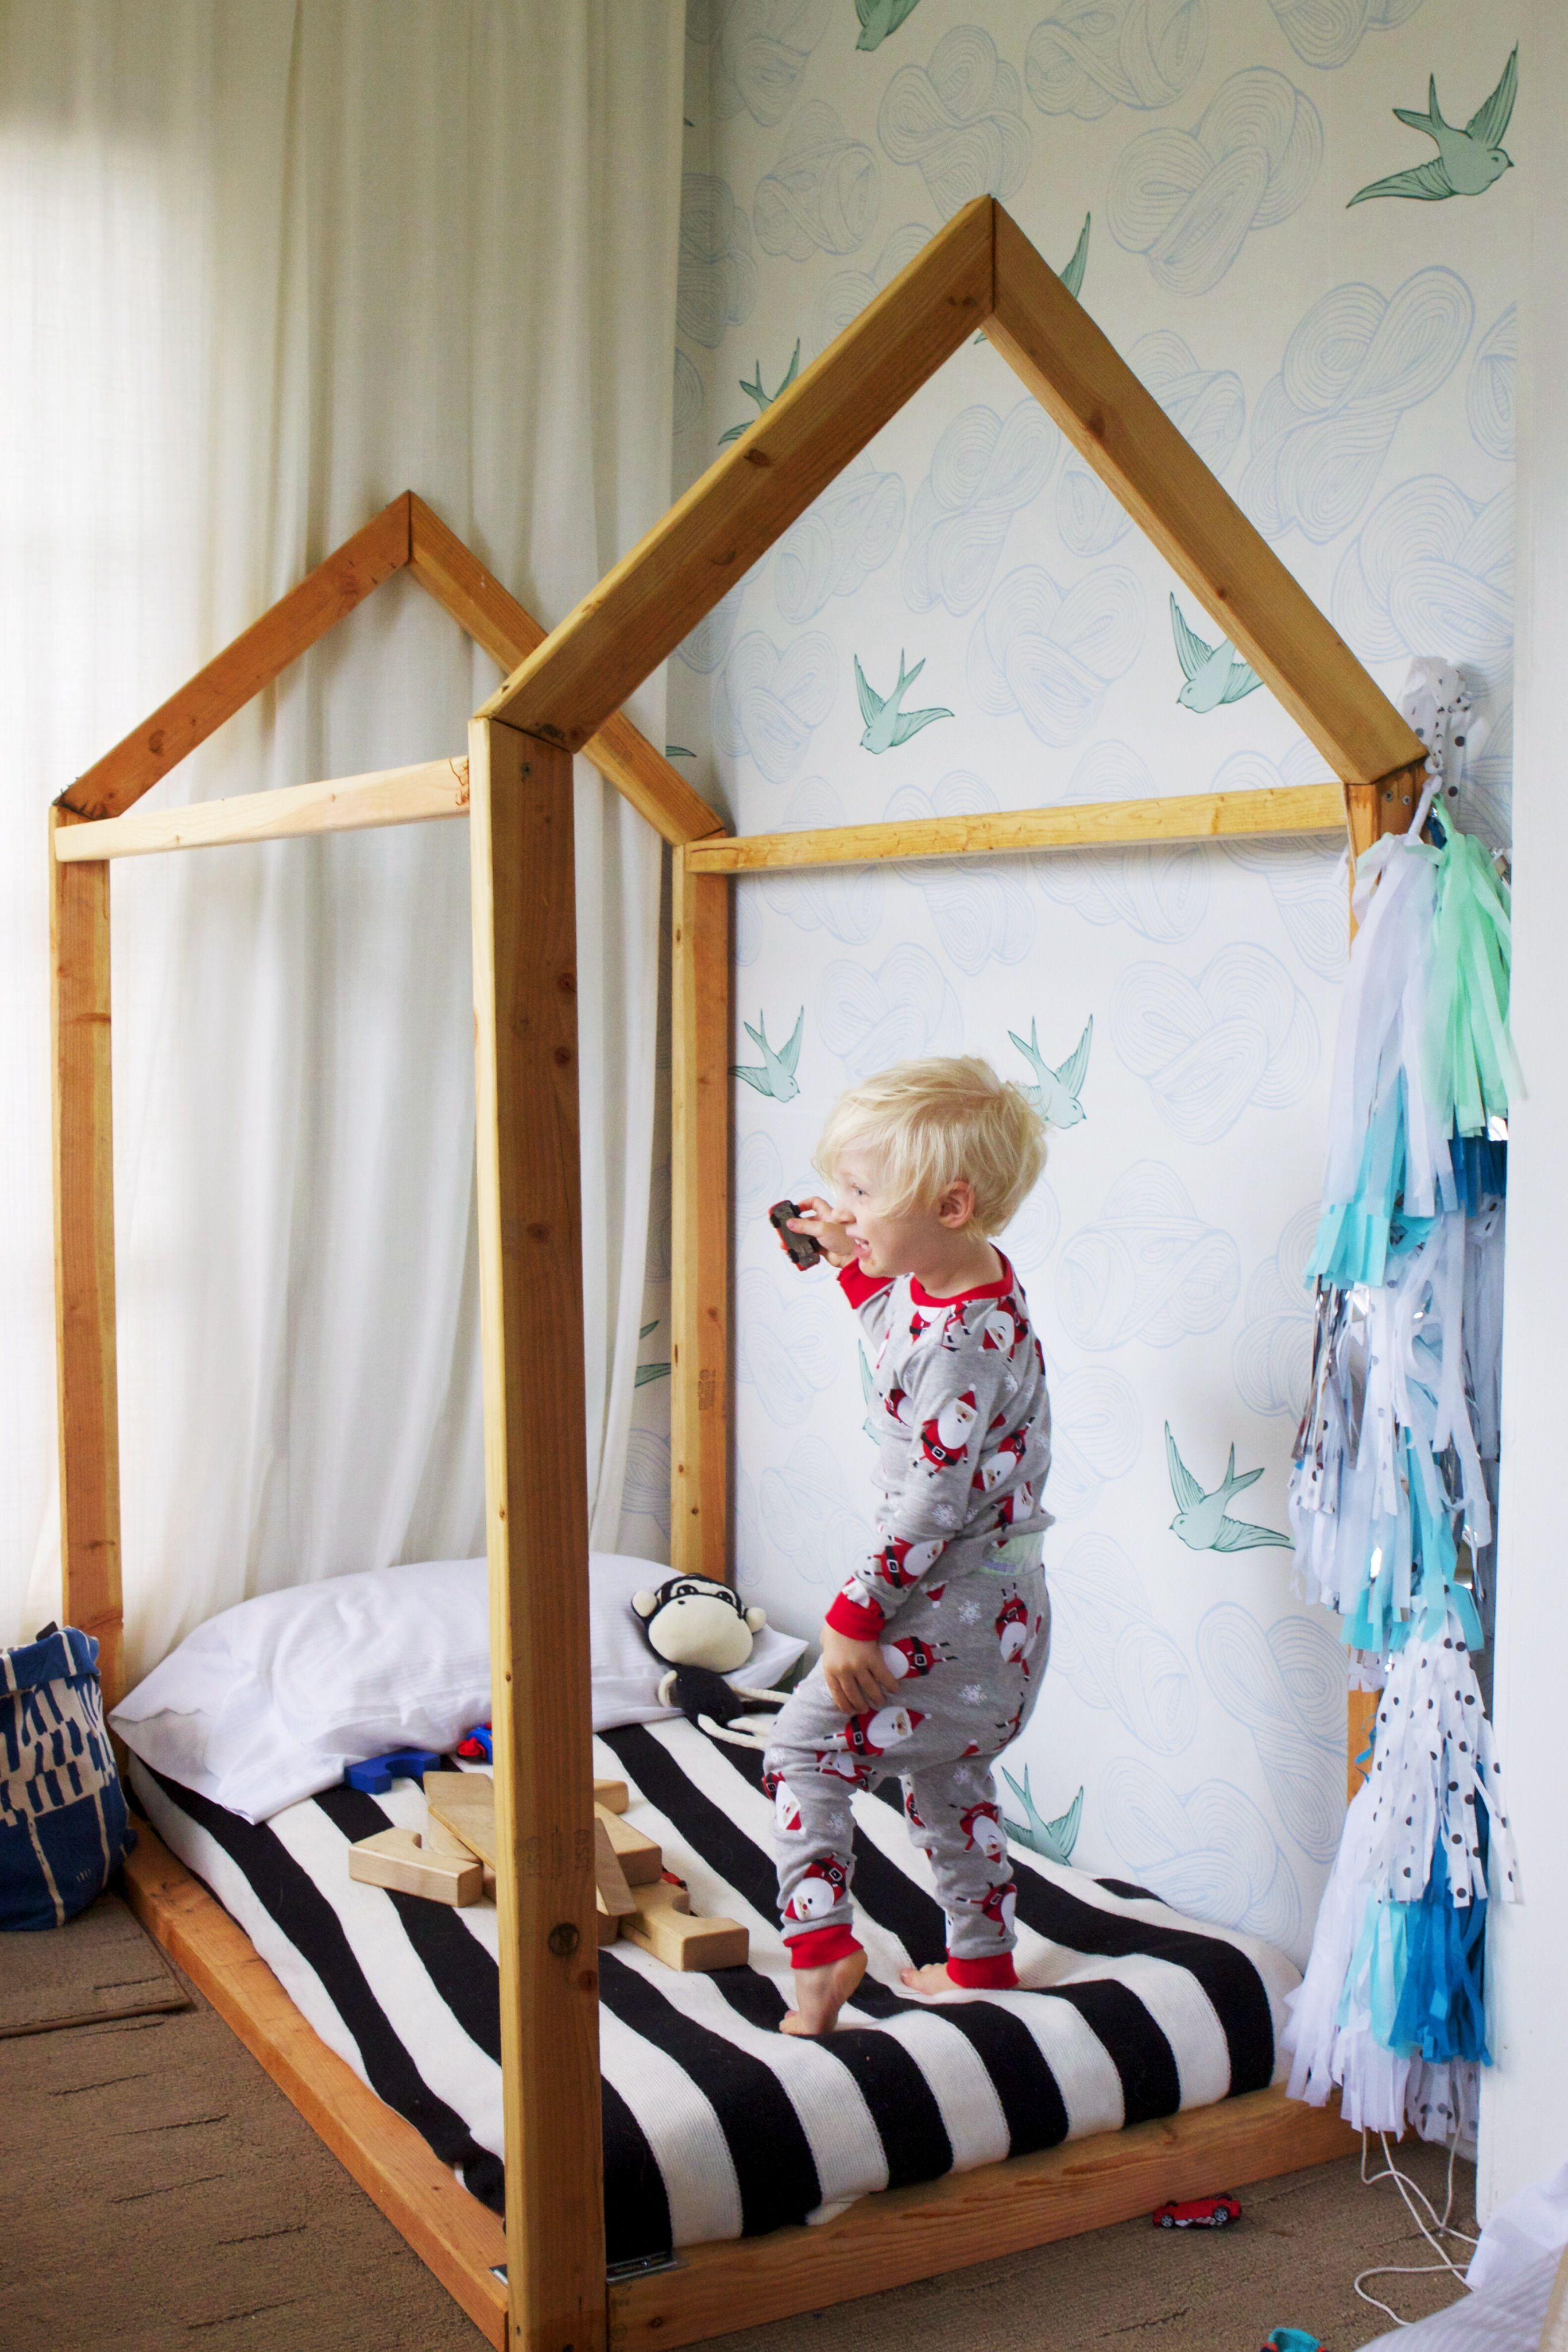 Diy Toddler House Bed, Hygge And West Removable Wall Tiles, Everly Lane  Tissue Garland